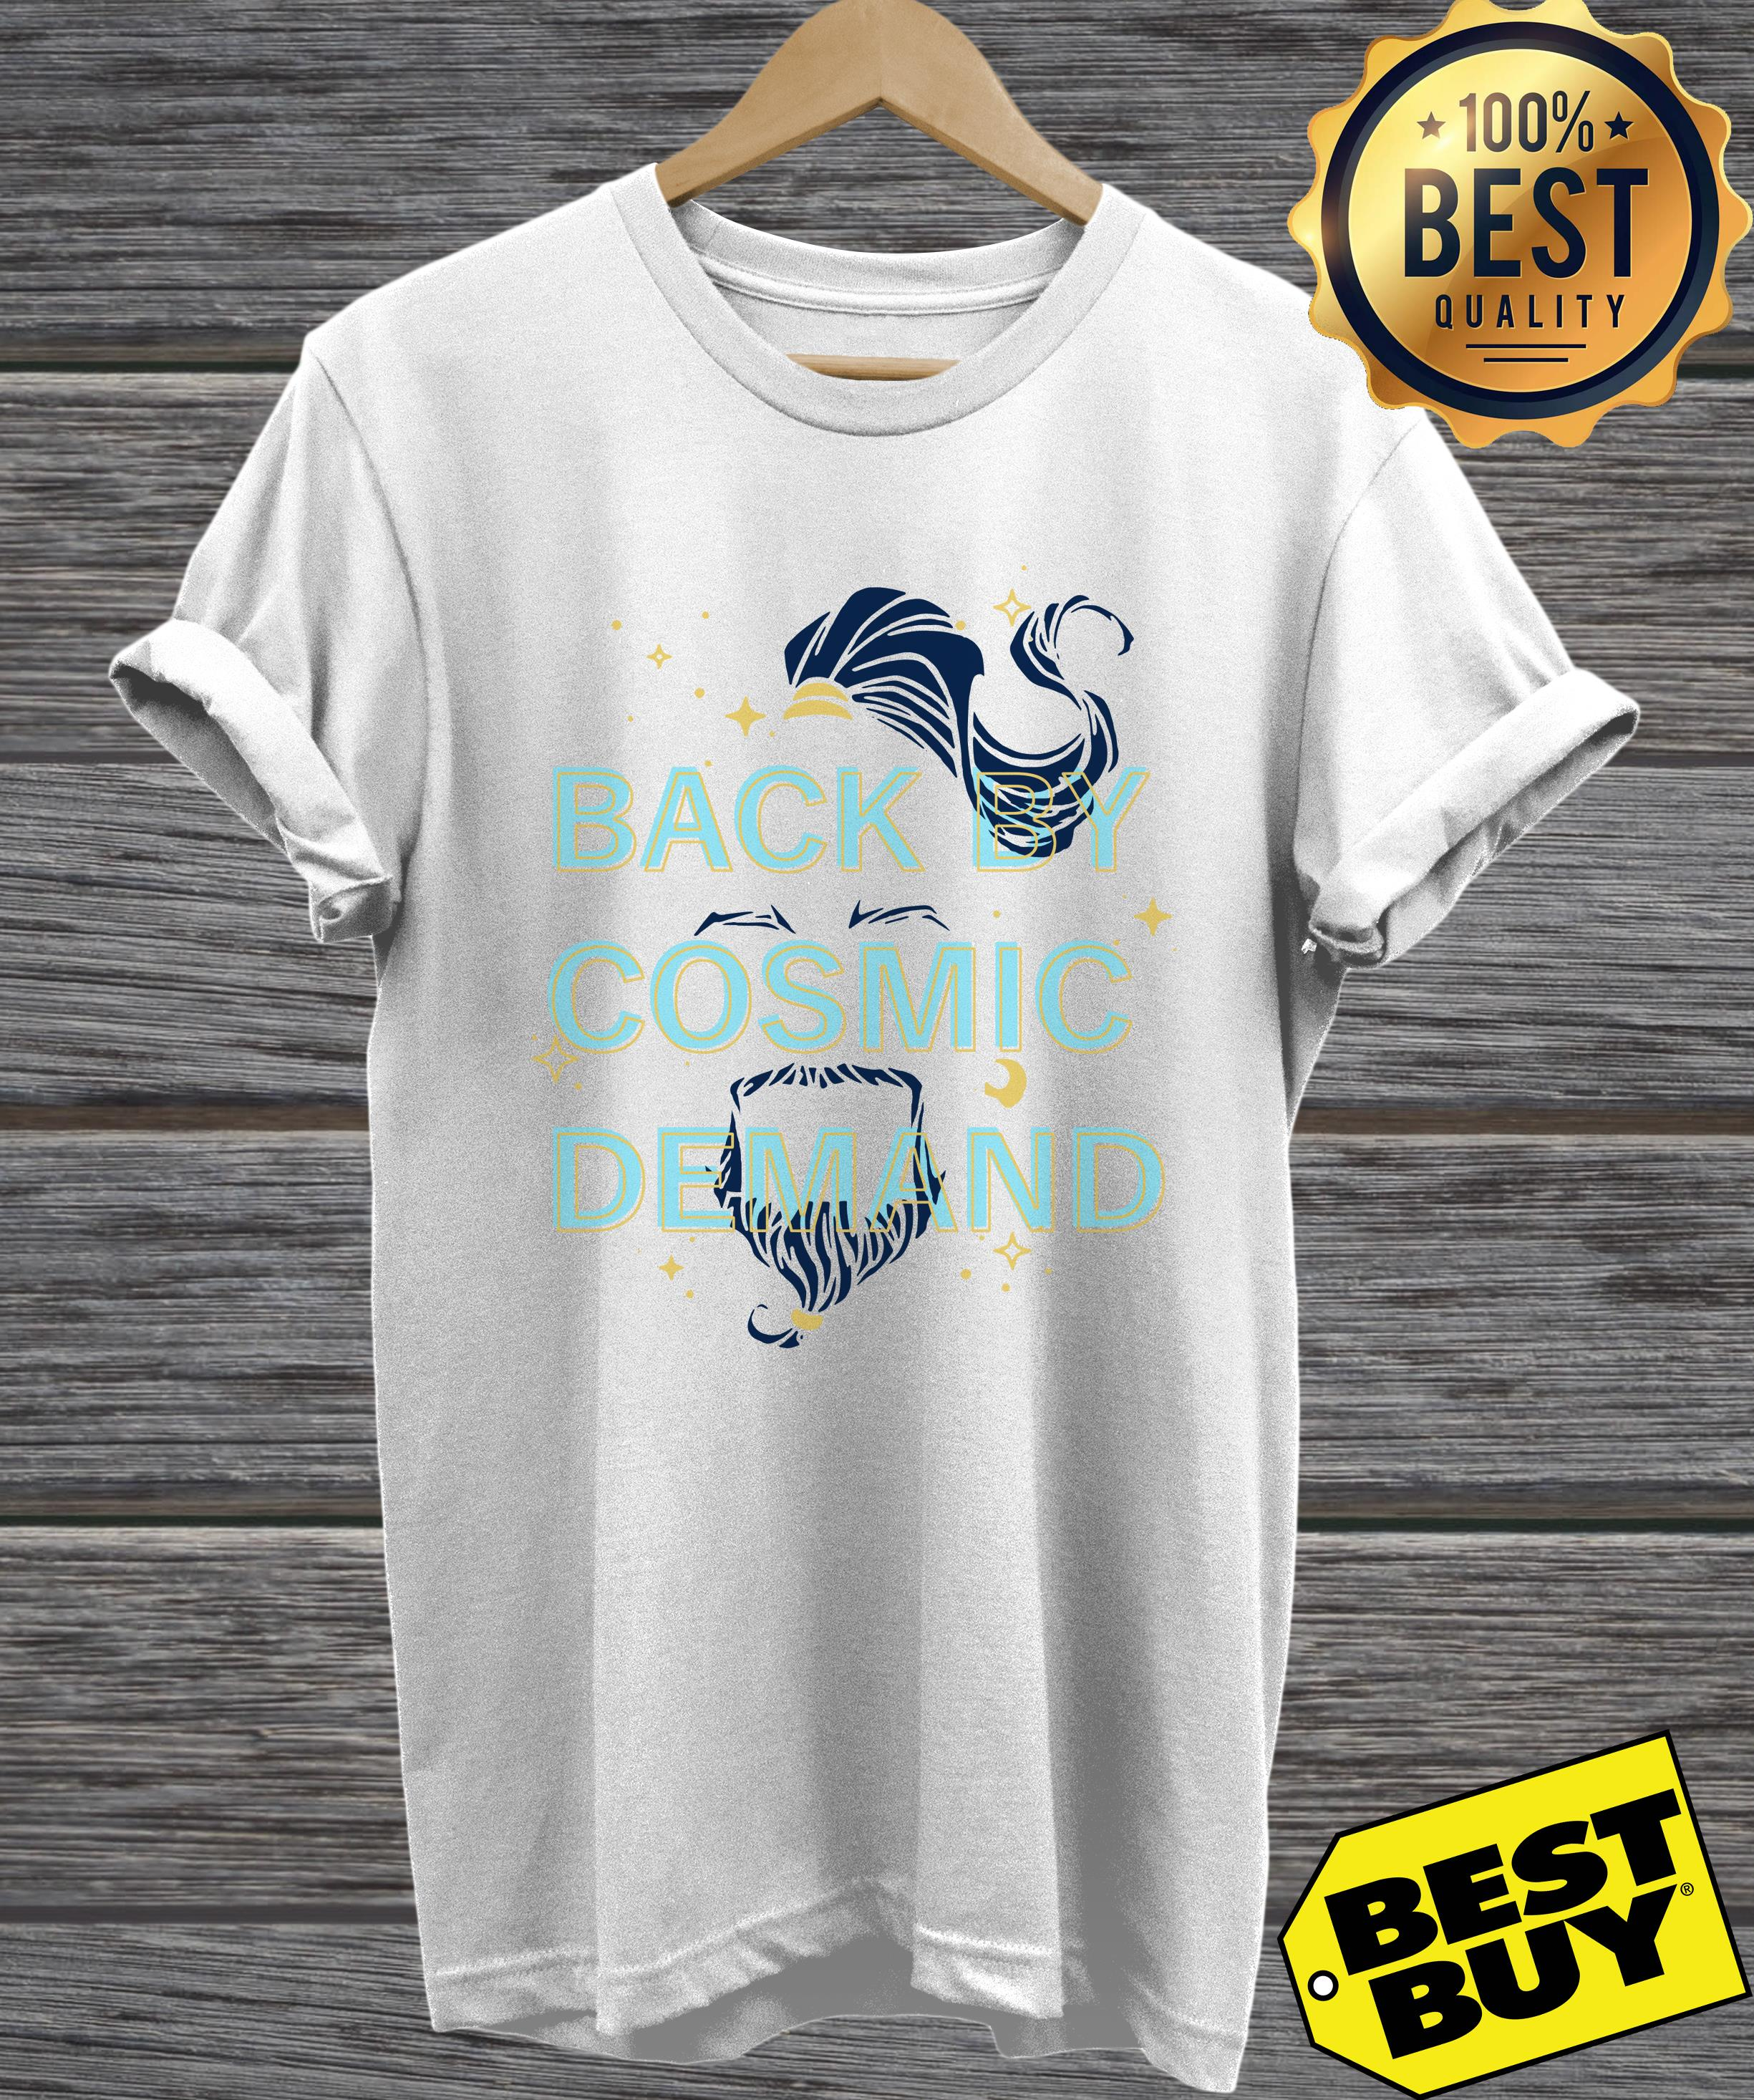 Disney Aladdin 2019 back by cosmic demand v-neck